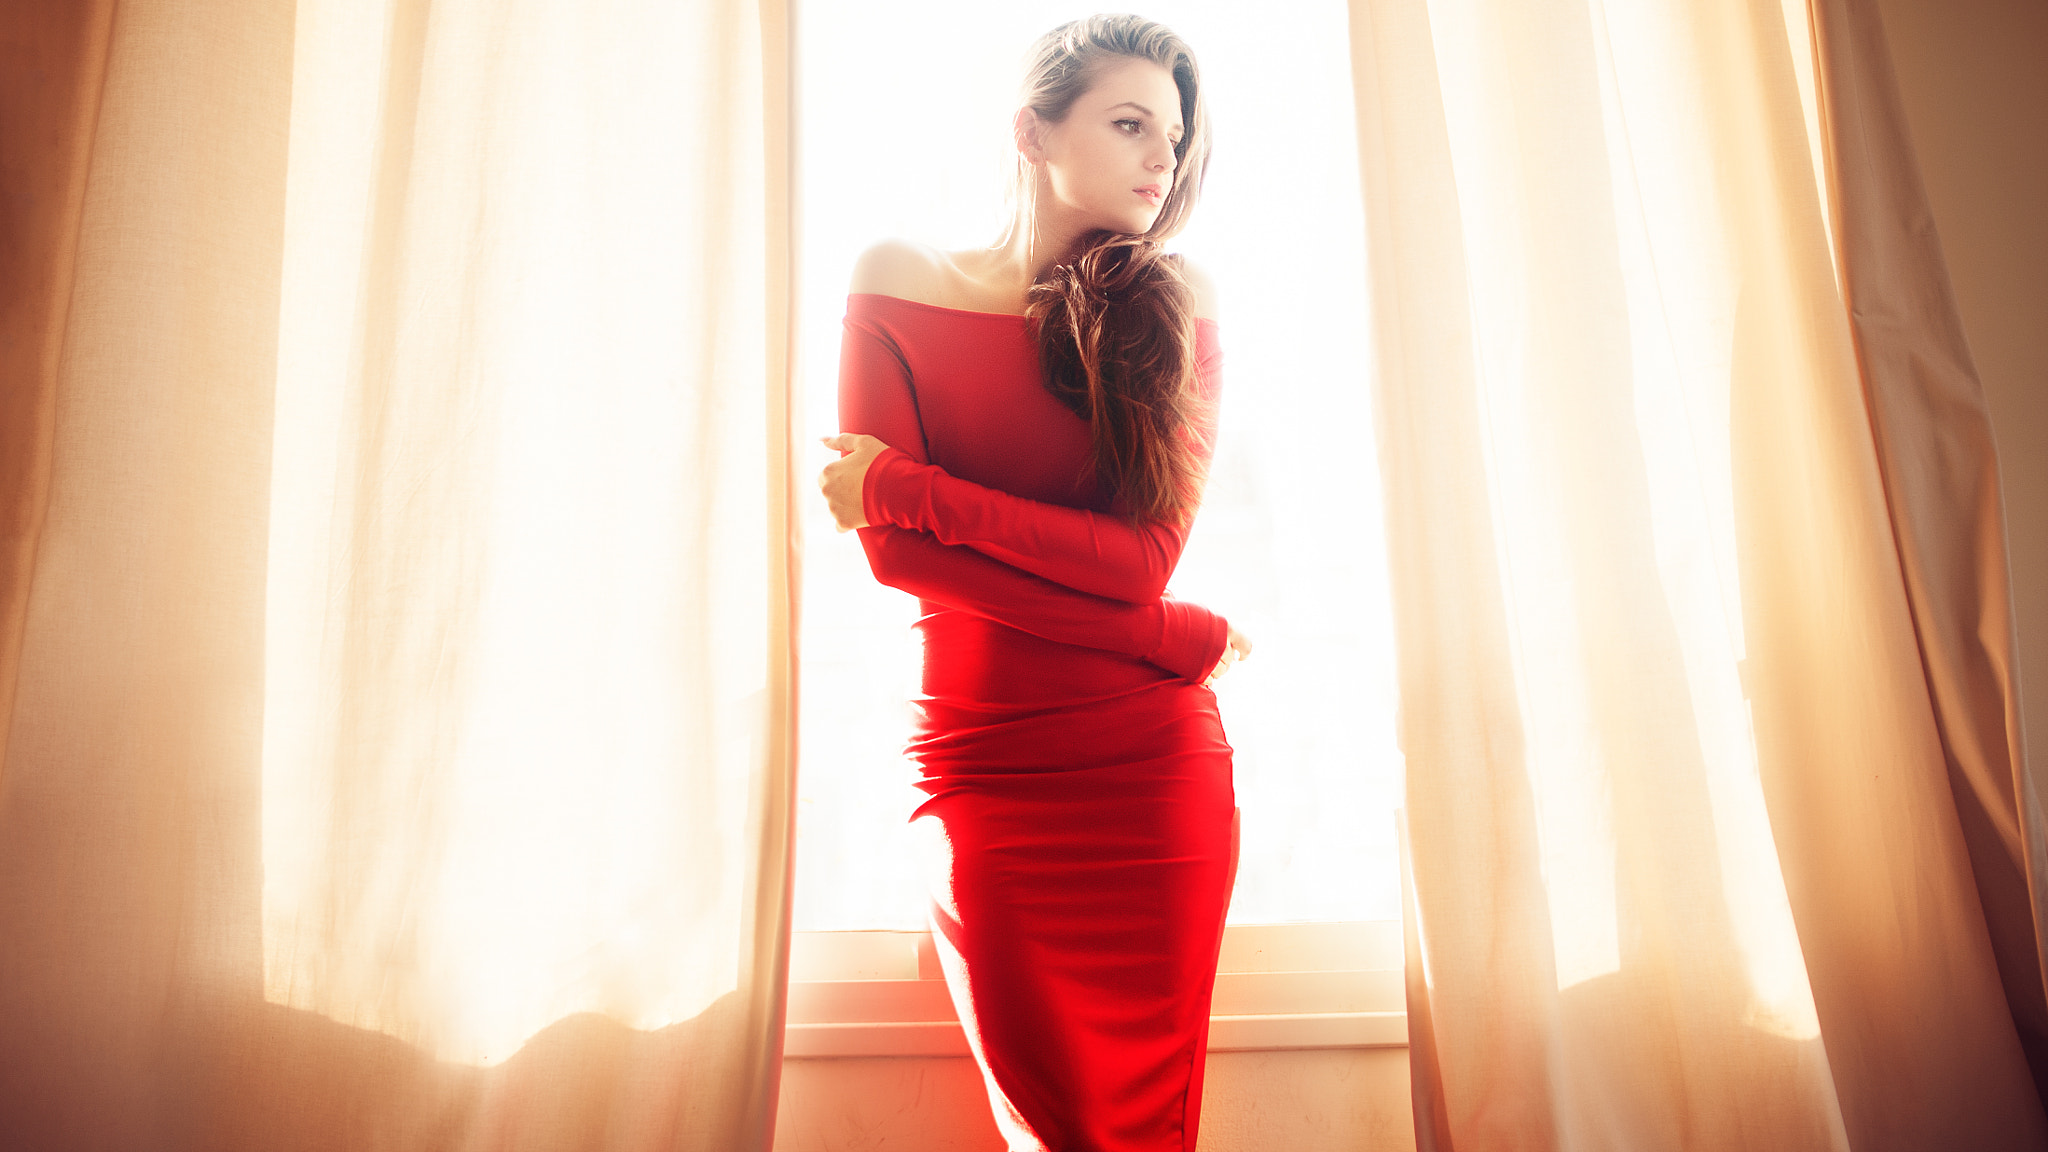 Photograph The Red Dress by Matan Eshel on 500px